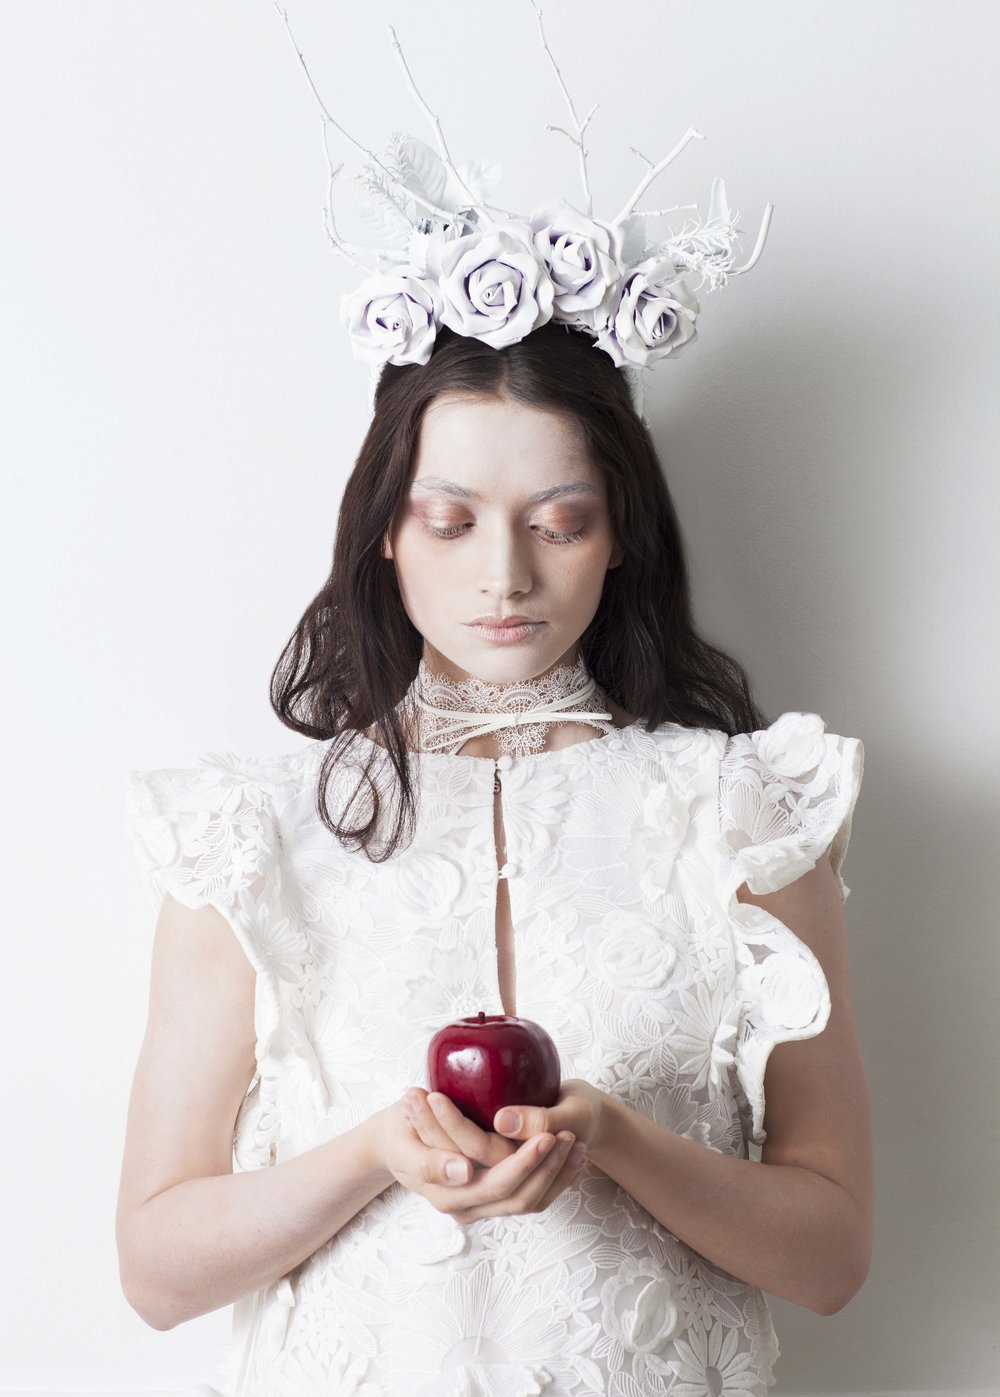 snow white1_PORTRait.jpg